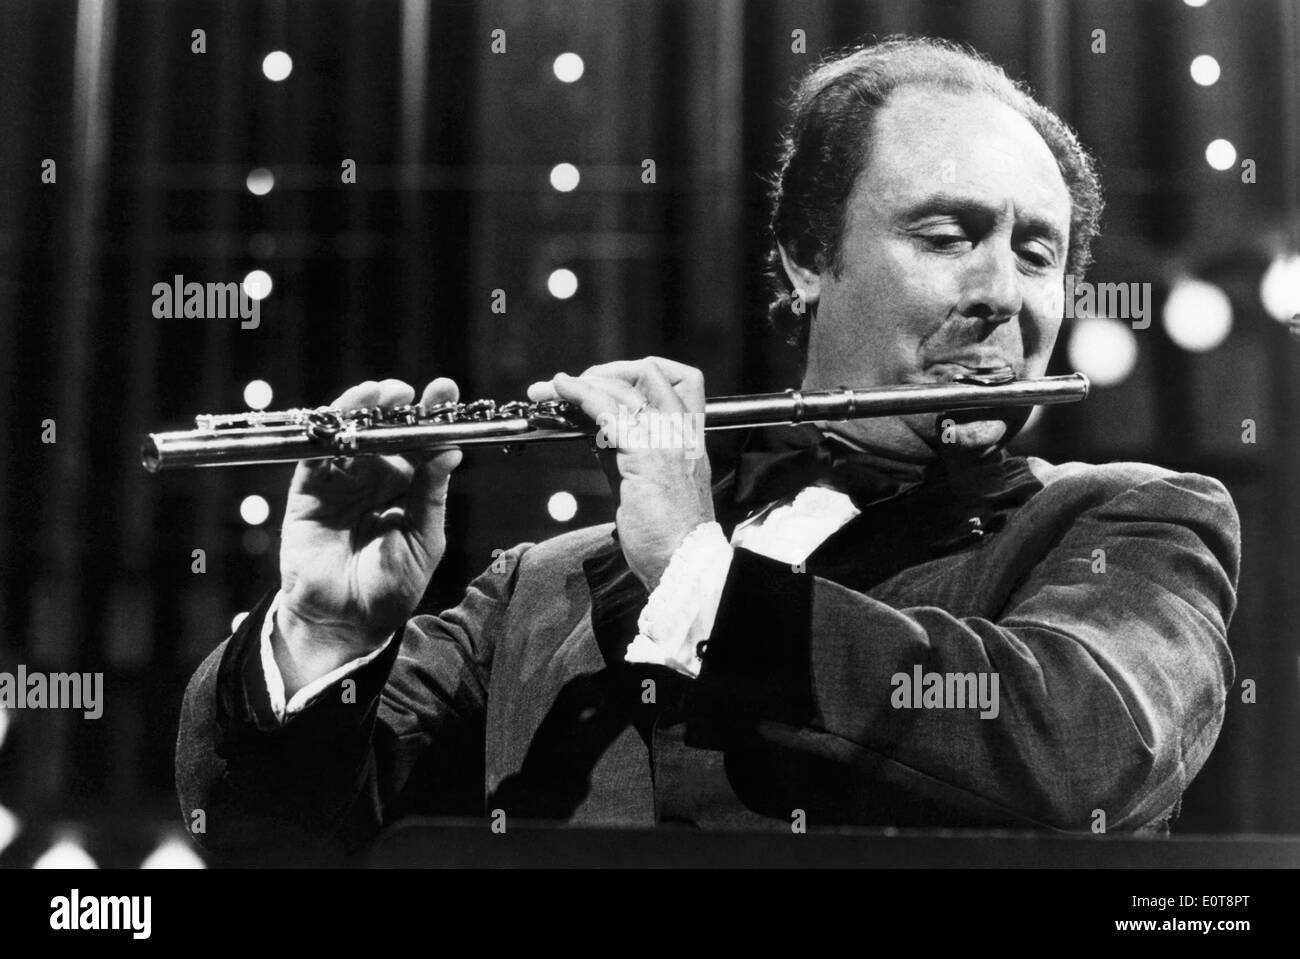 Jean-Pierre Rampal, French Flautist, Performing for Boston Pops Orchestra, 1977 - Stock Image